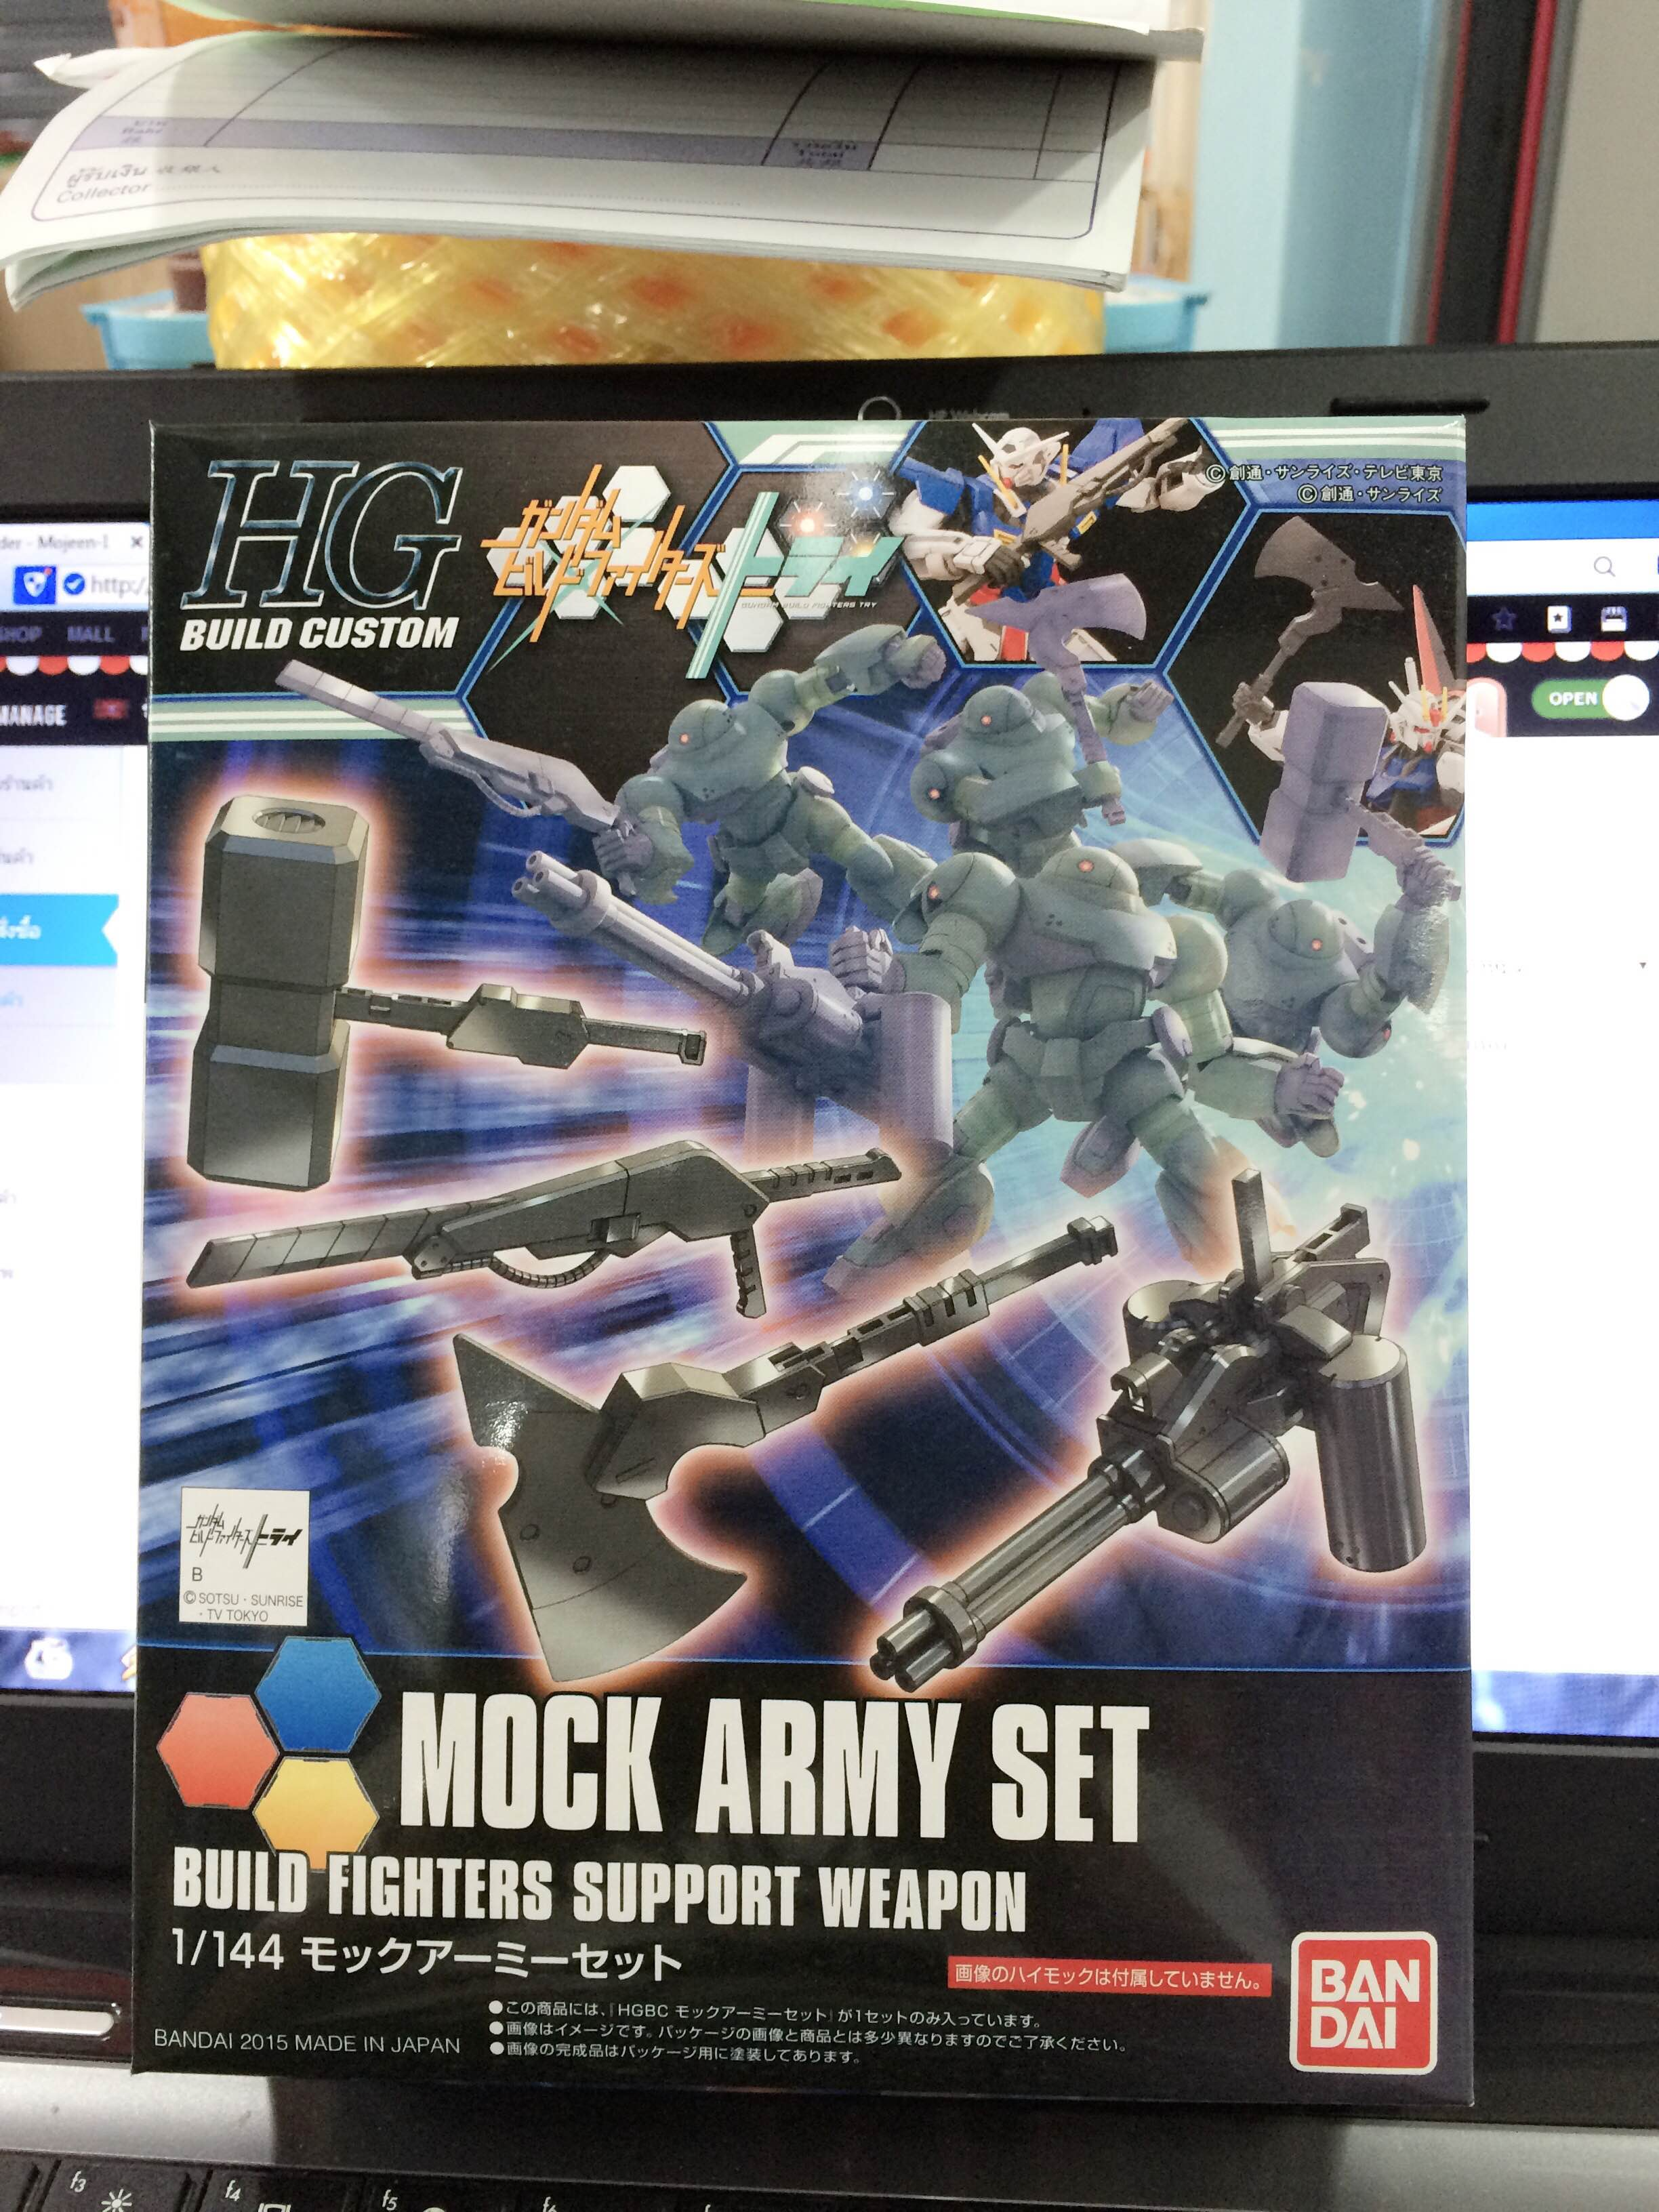 MOCK ARMY SET